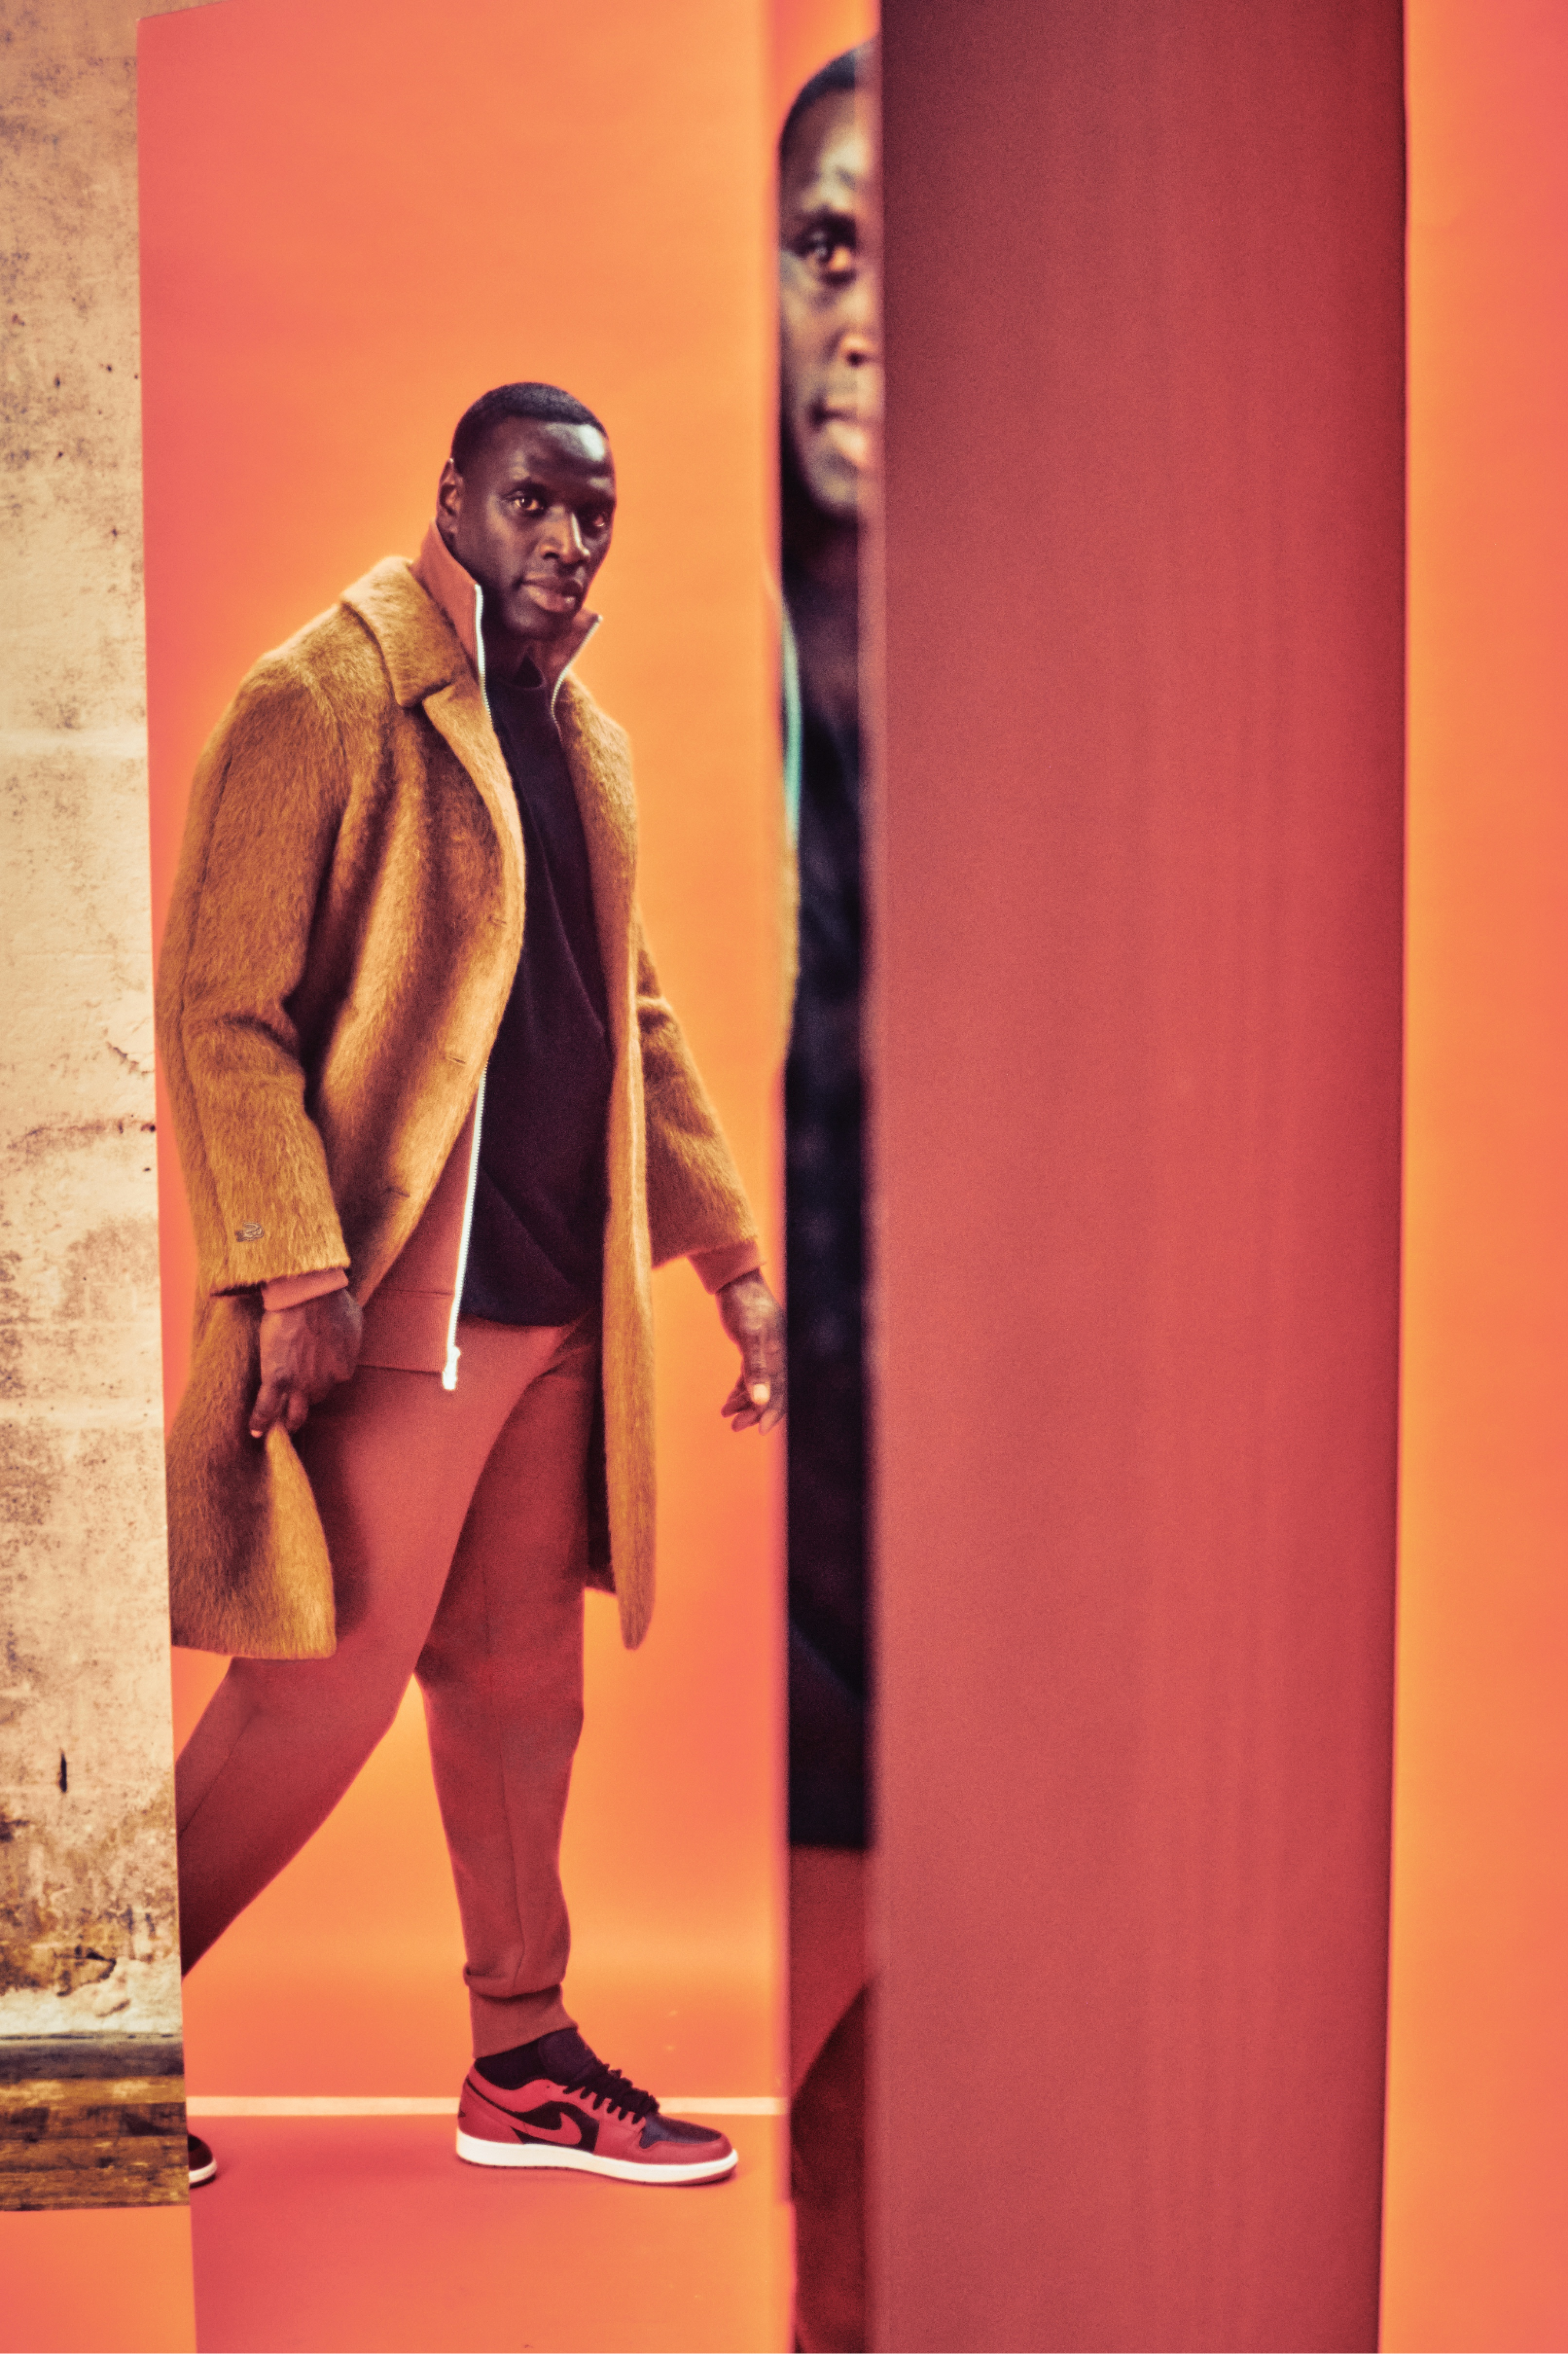 More reflections of Sy, this time in a long orange-brown coat and red Jordan 1s.